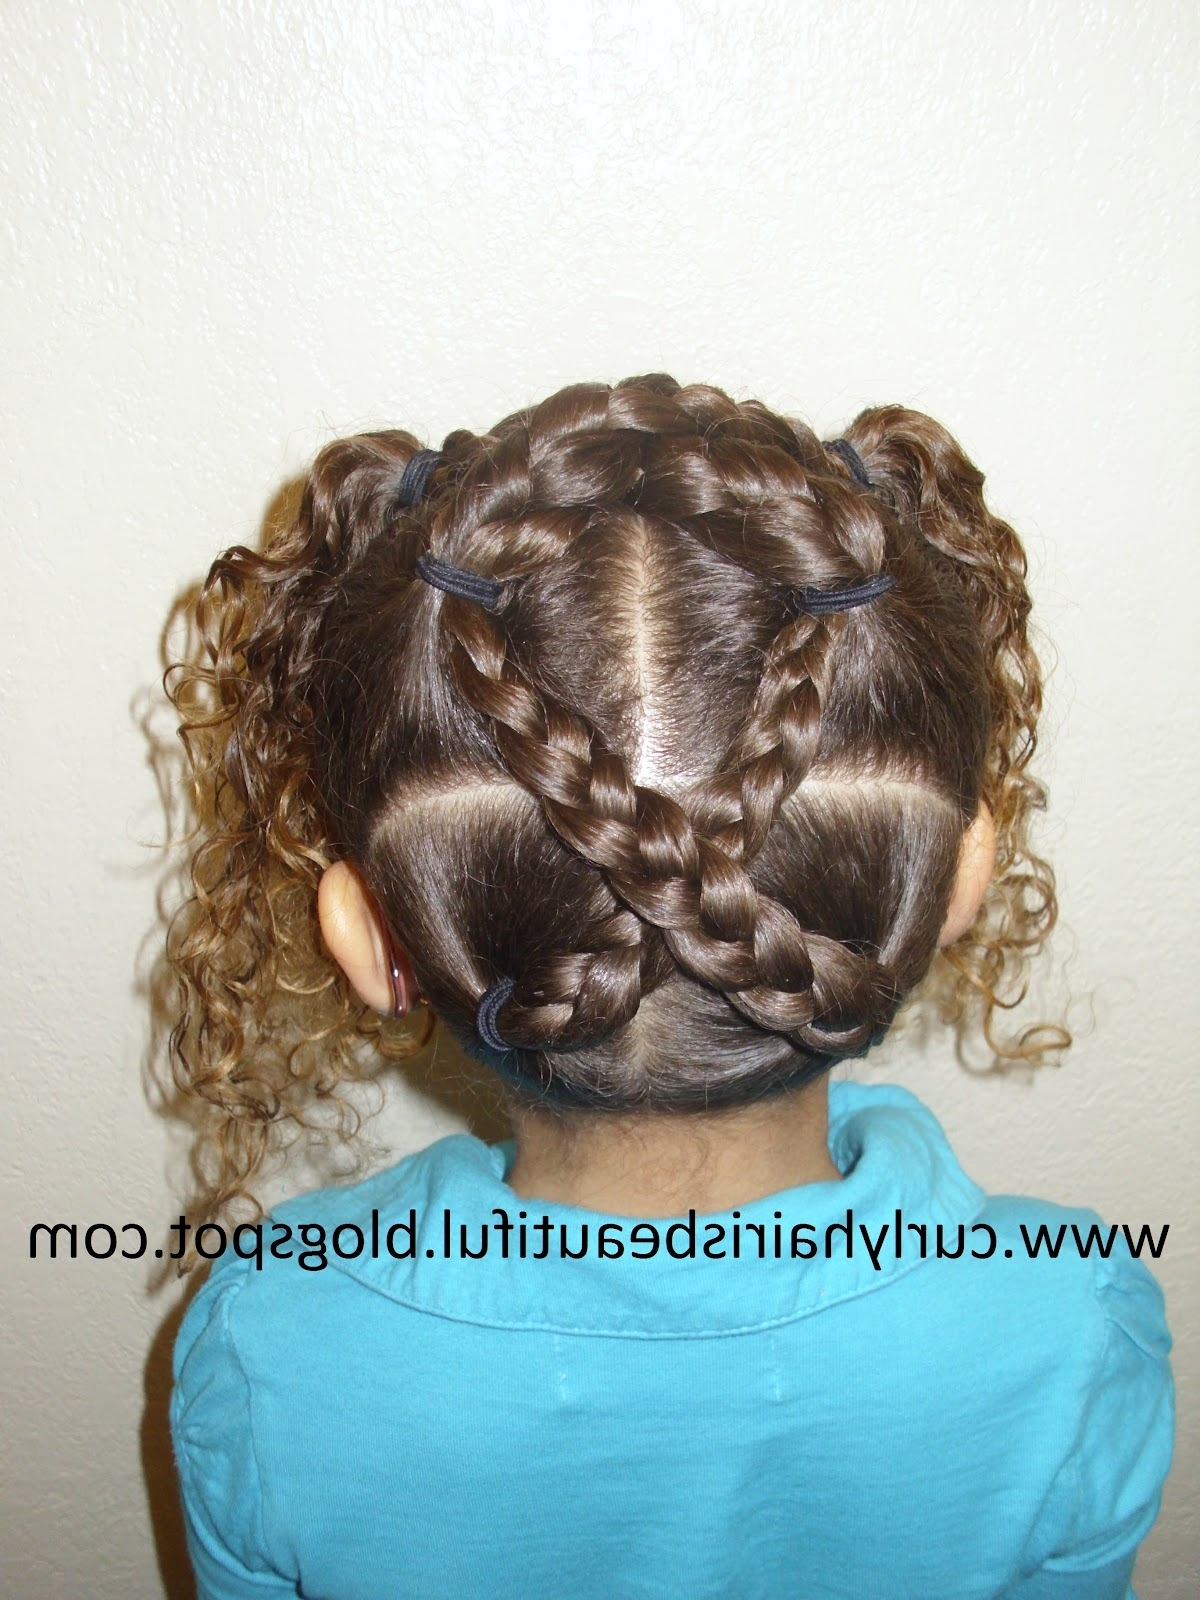 Widely Used The Criss Cross Ponytail Hairstyles For Curly Hair Is Beautiful!: Criss Cross Ponytails And Curls (View 20 of 20)